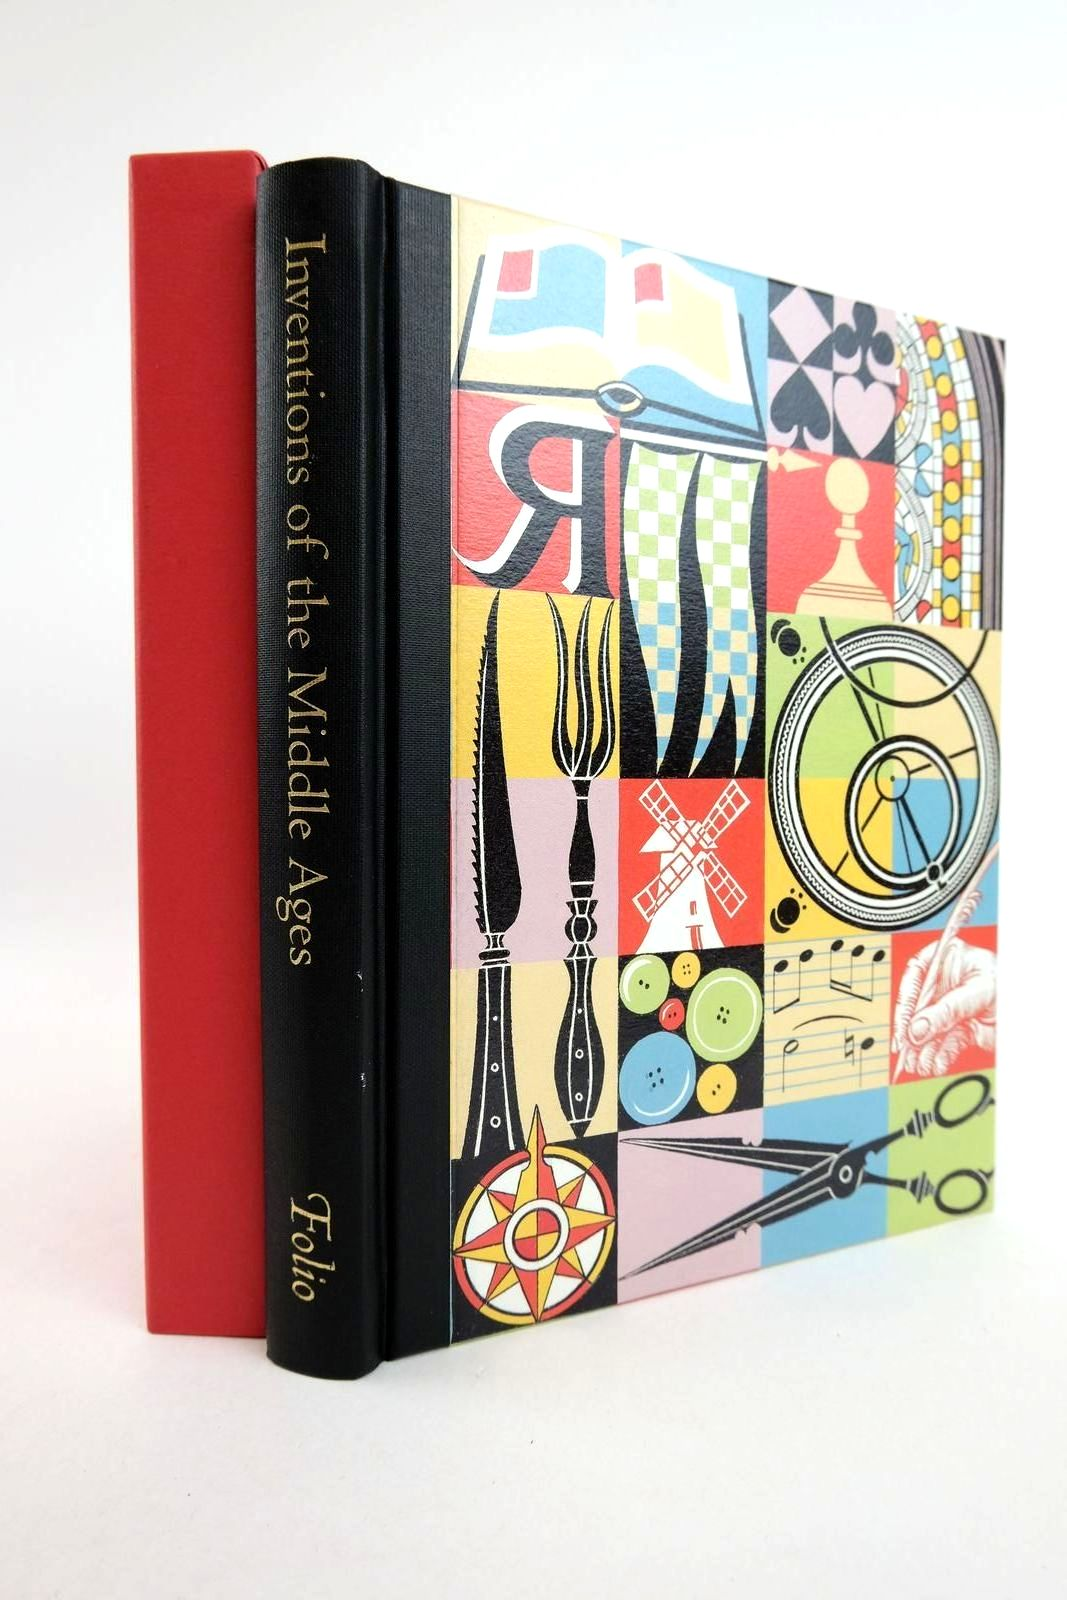 Photo of INVENTIONS OF THE MIDDLE AGES written by Frugoni, Chiara published by Folio Society (STOCK CODE: 2133164)  for sale by Stella & Rose's Books